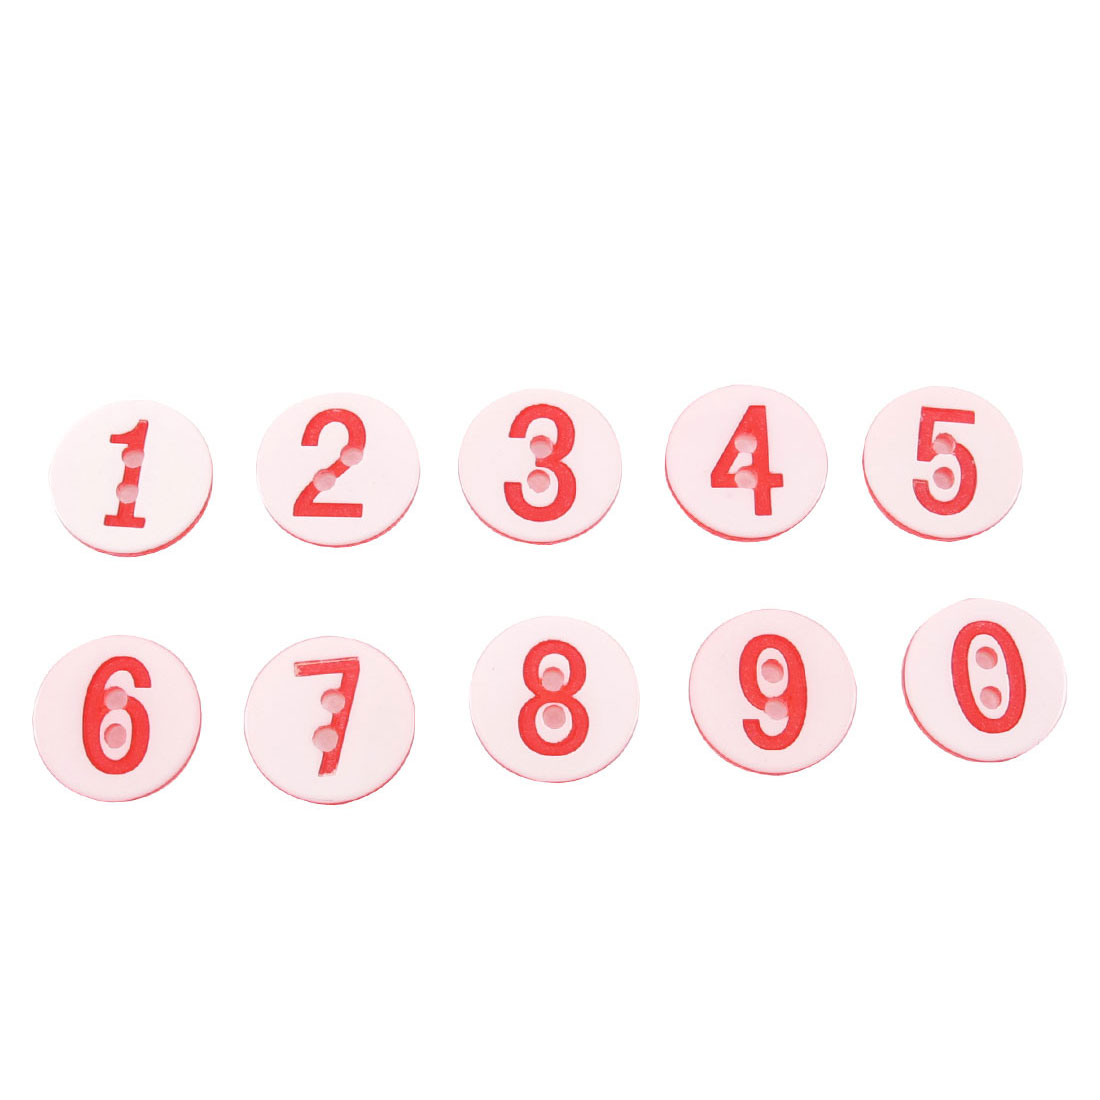 10 Pcs Plastic Numbers Printed Sewing Craft Clothing Buttons Red White